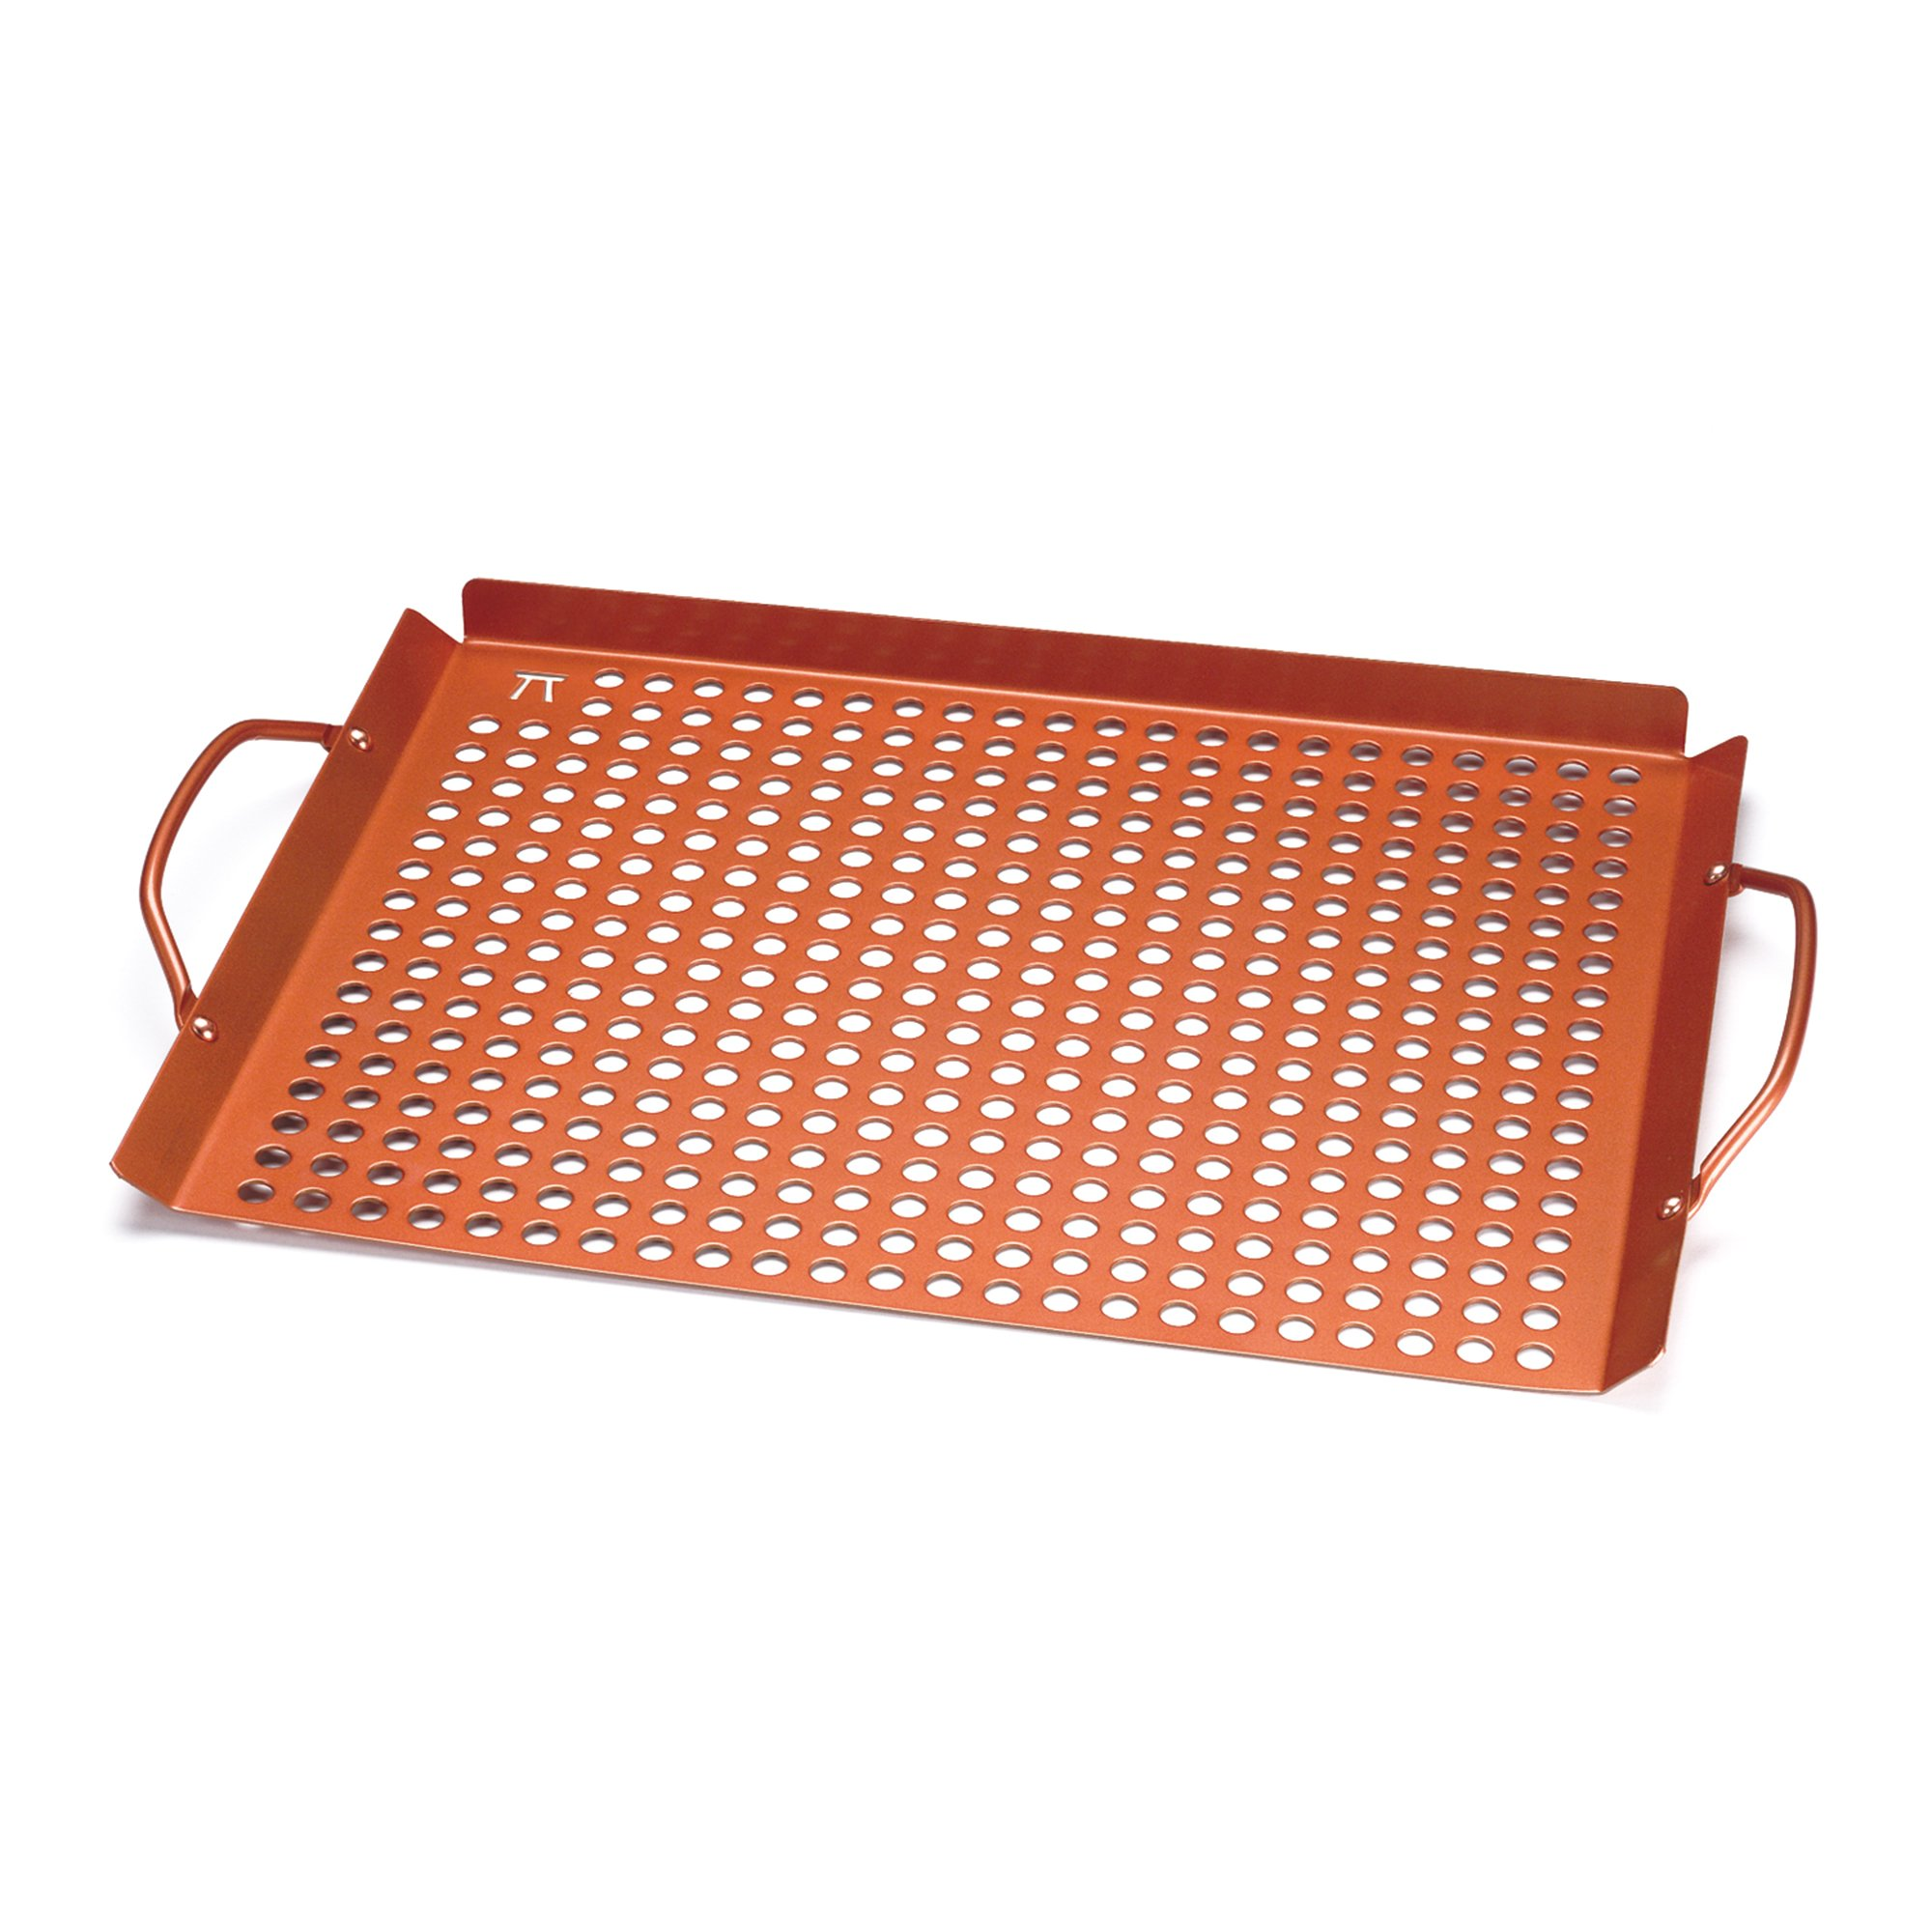 Outset QN71 Large Grill Grid with Handles, Copper Non-Stick